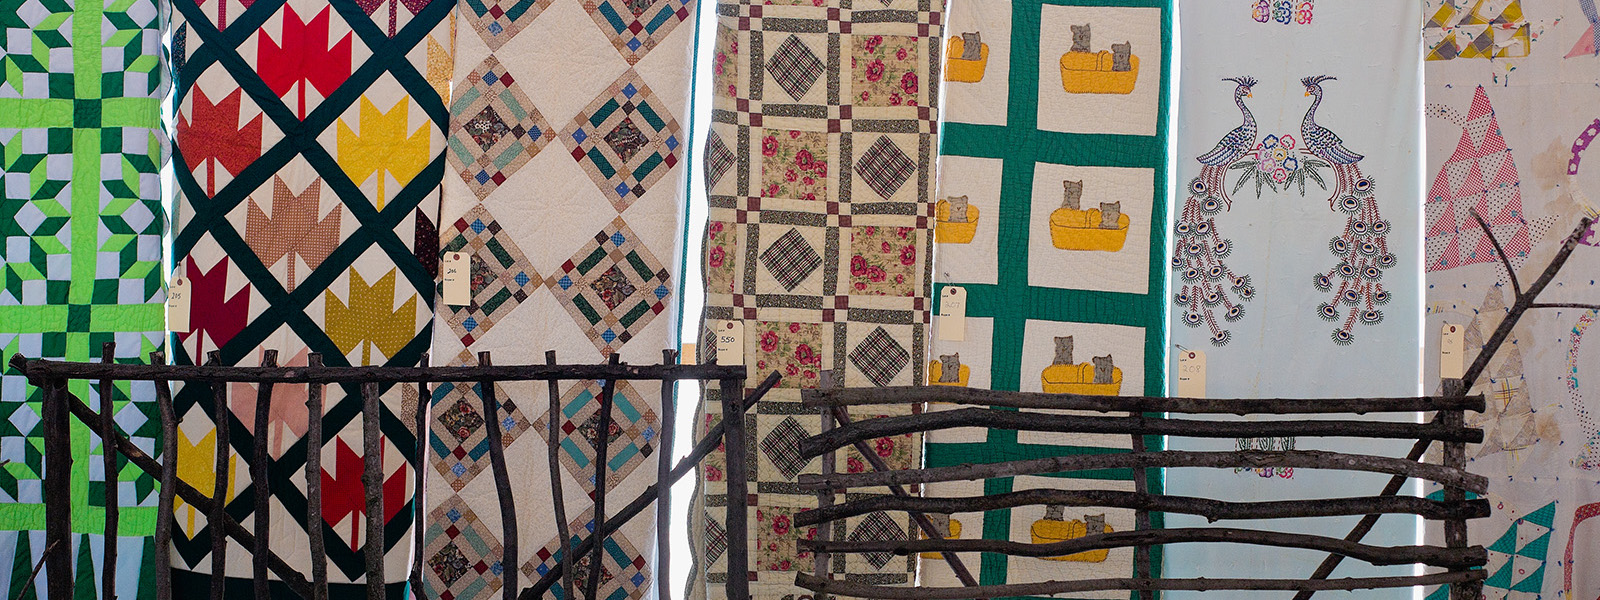 Quilts hanging at Amish auction, Fordsbush Road